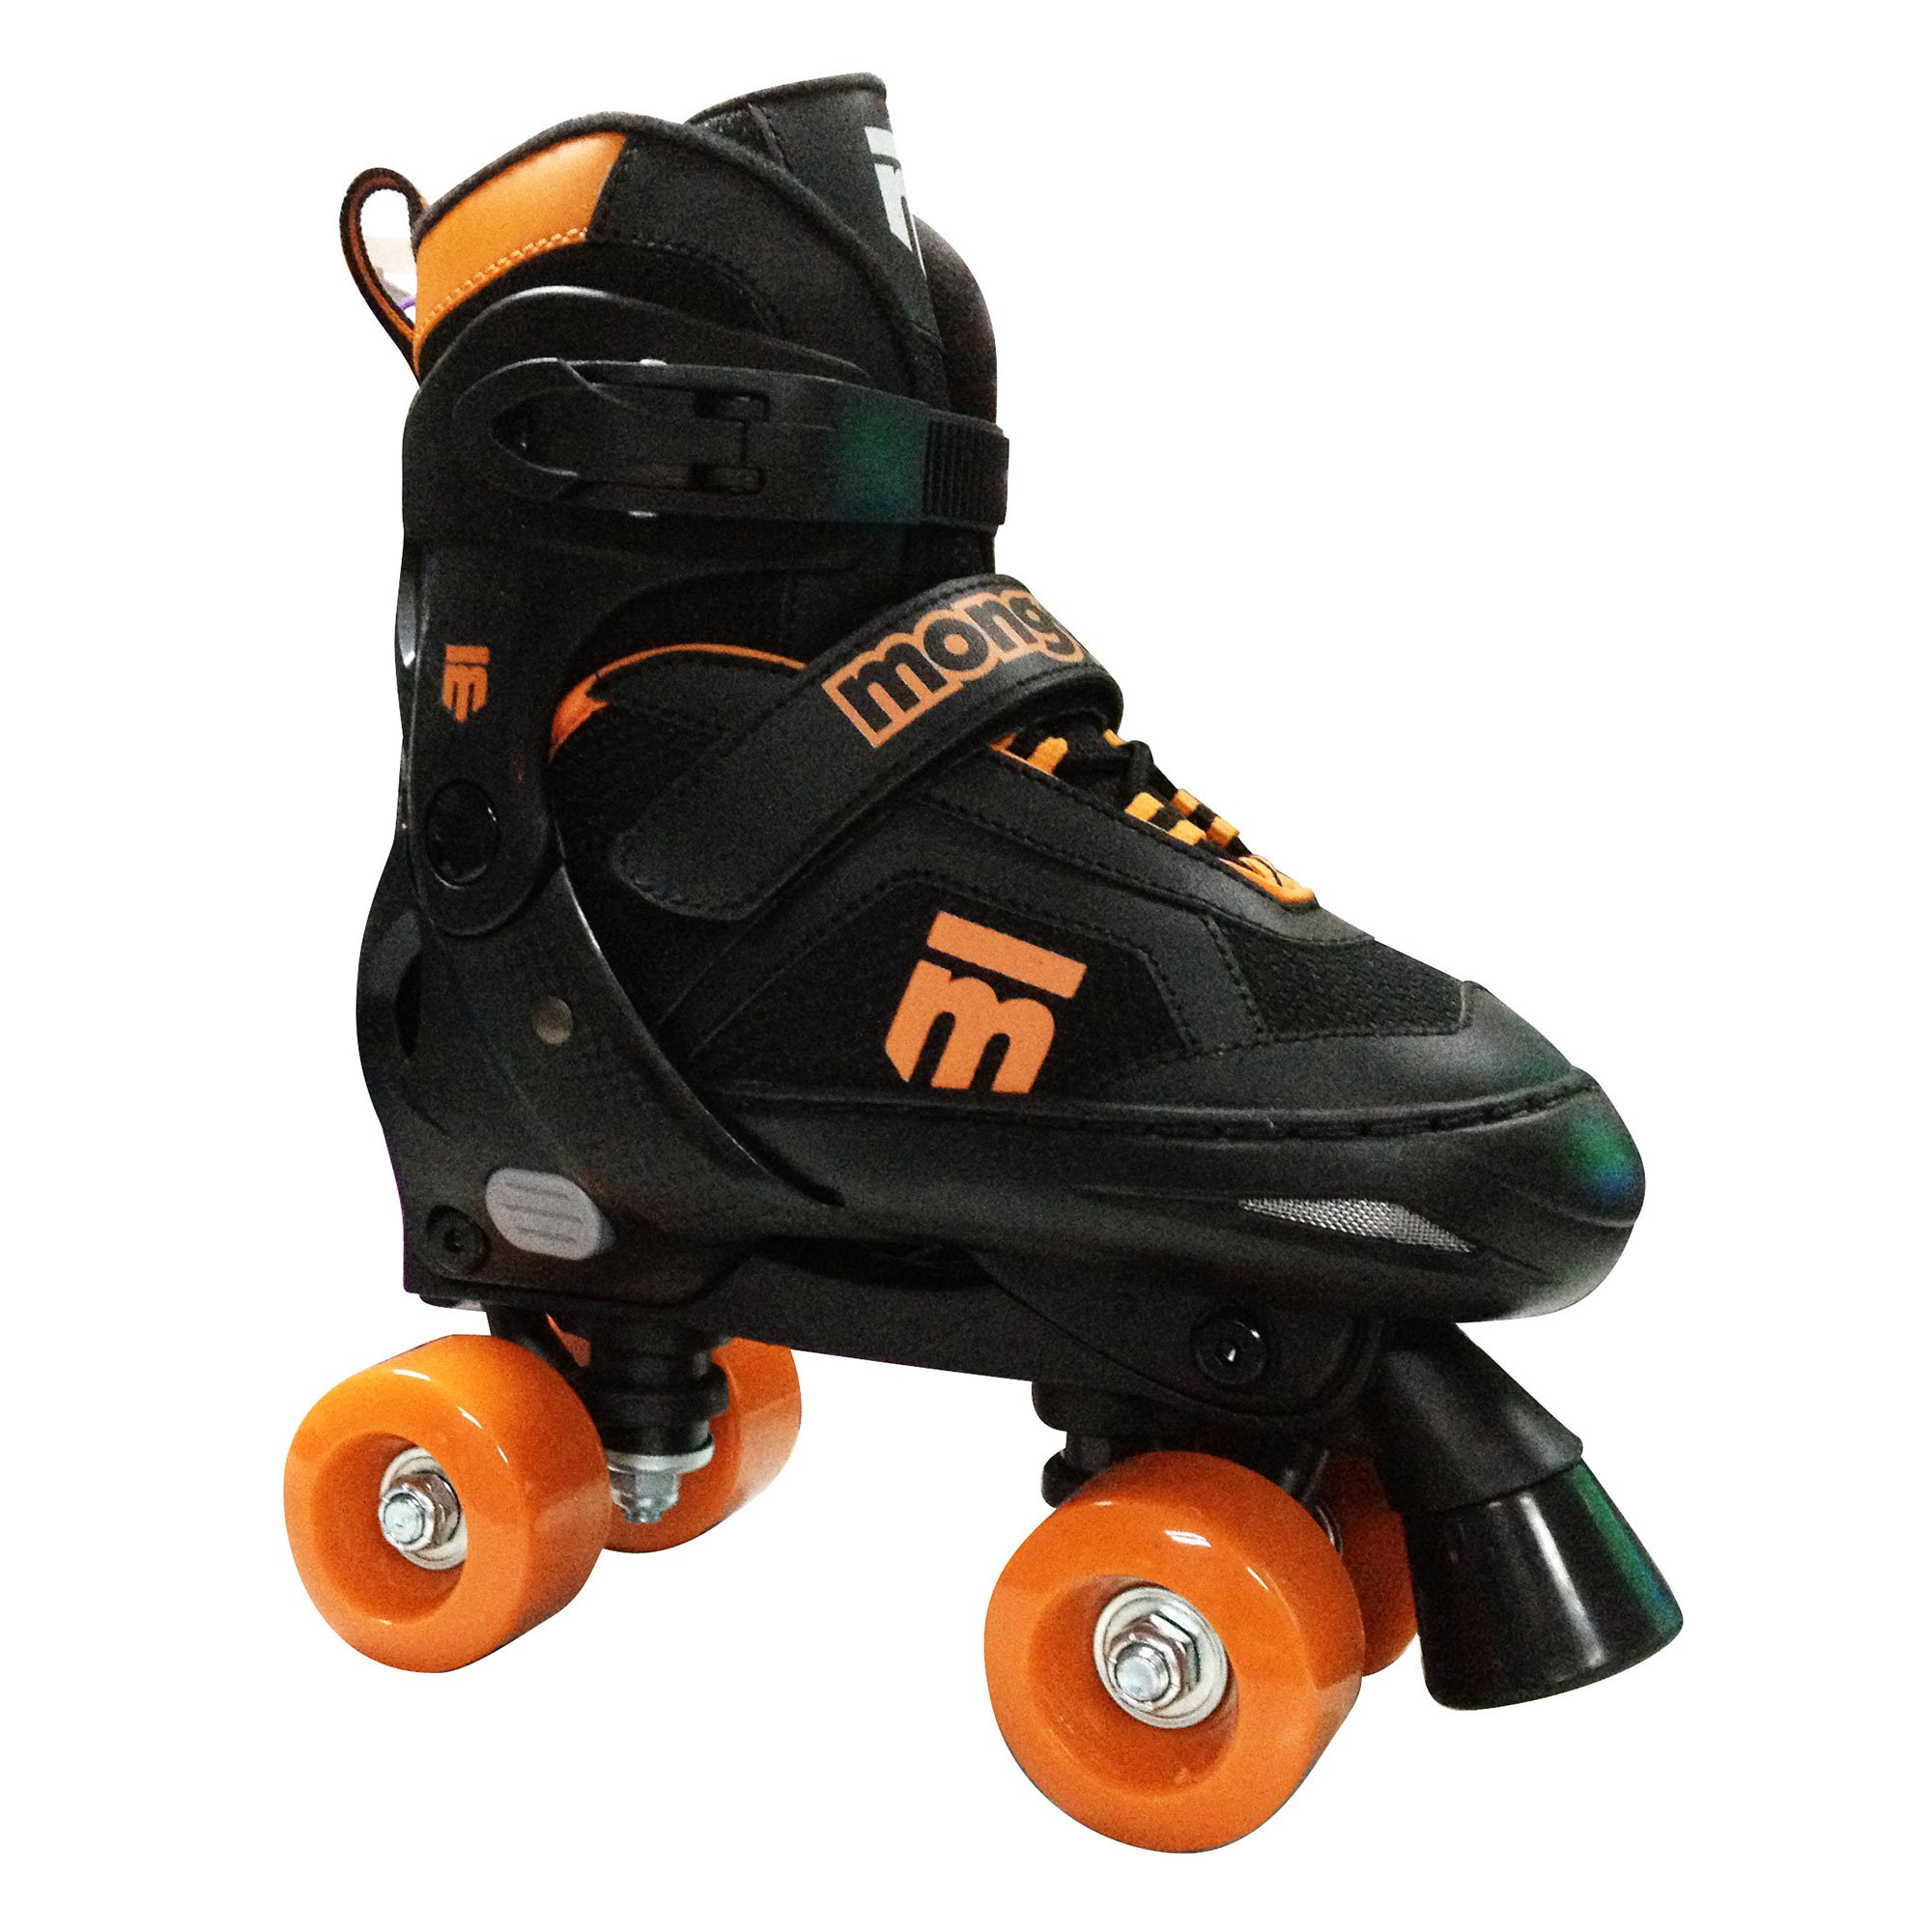 Mongoose MG-098B-S Boys Size Small Comfortable Quad Rollerblade Skates, Black